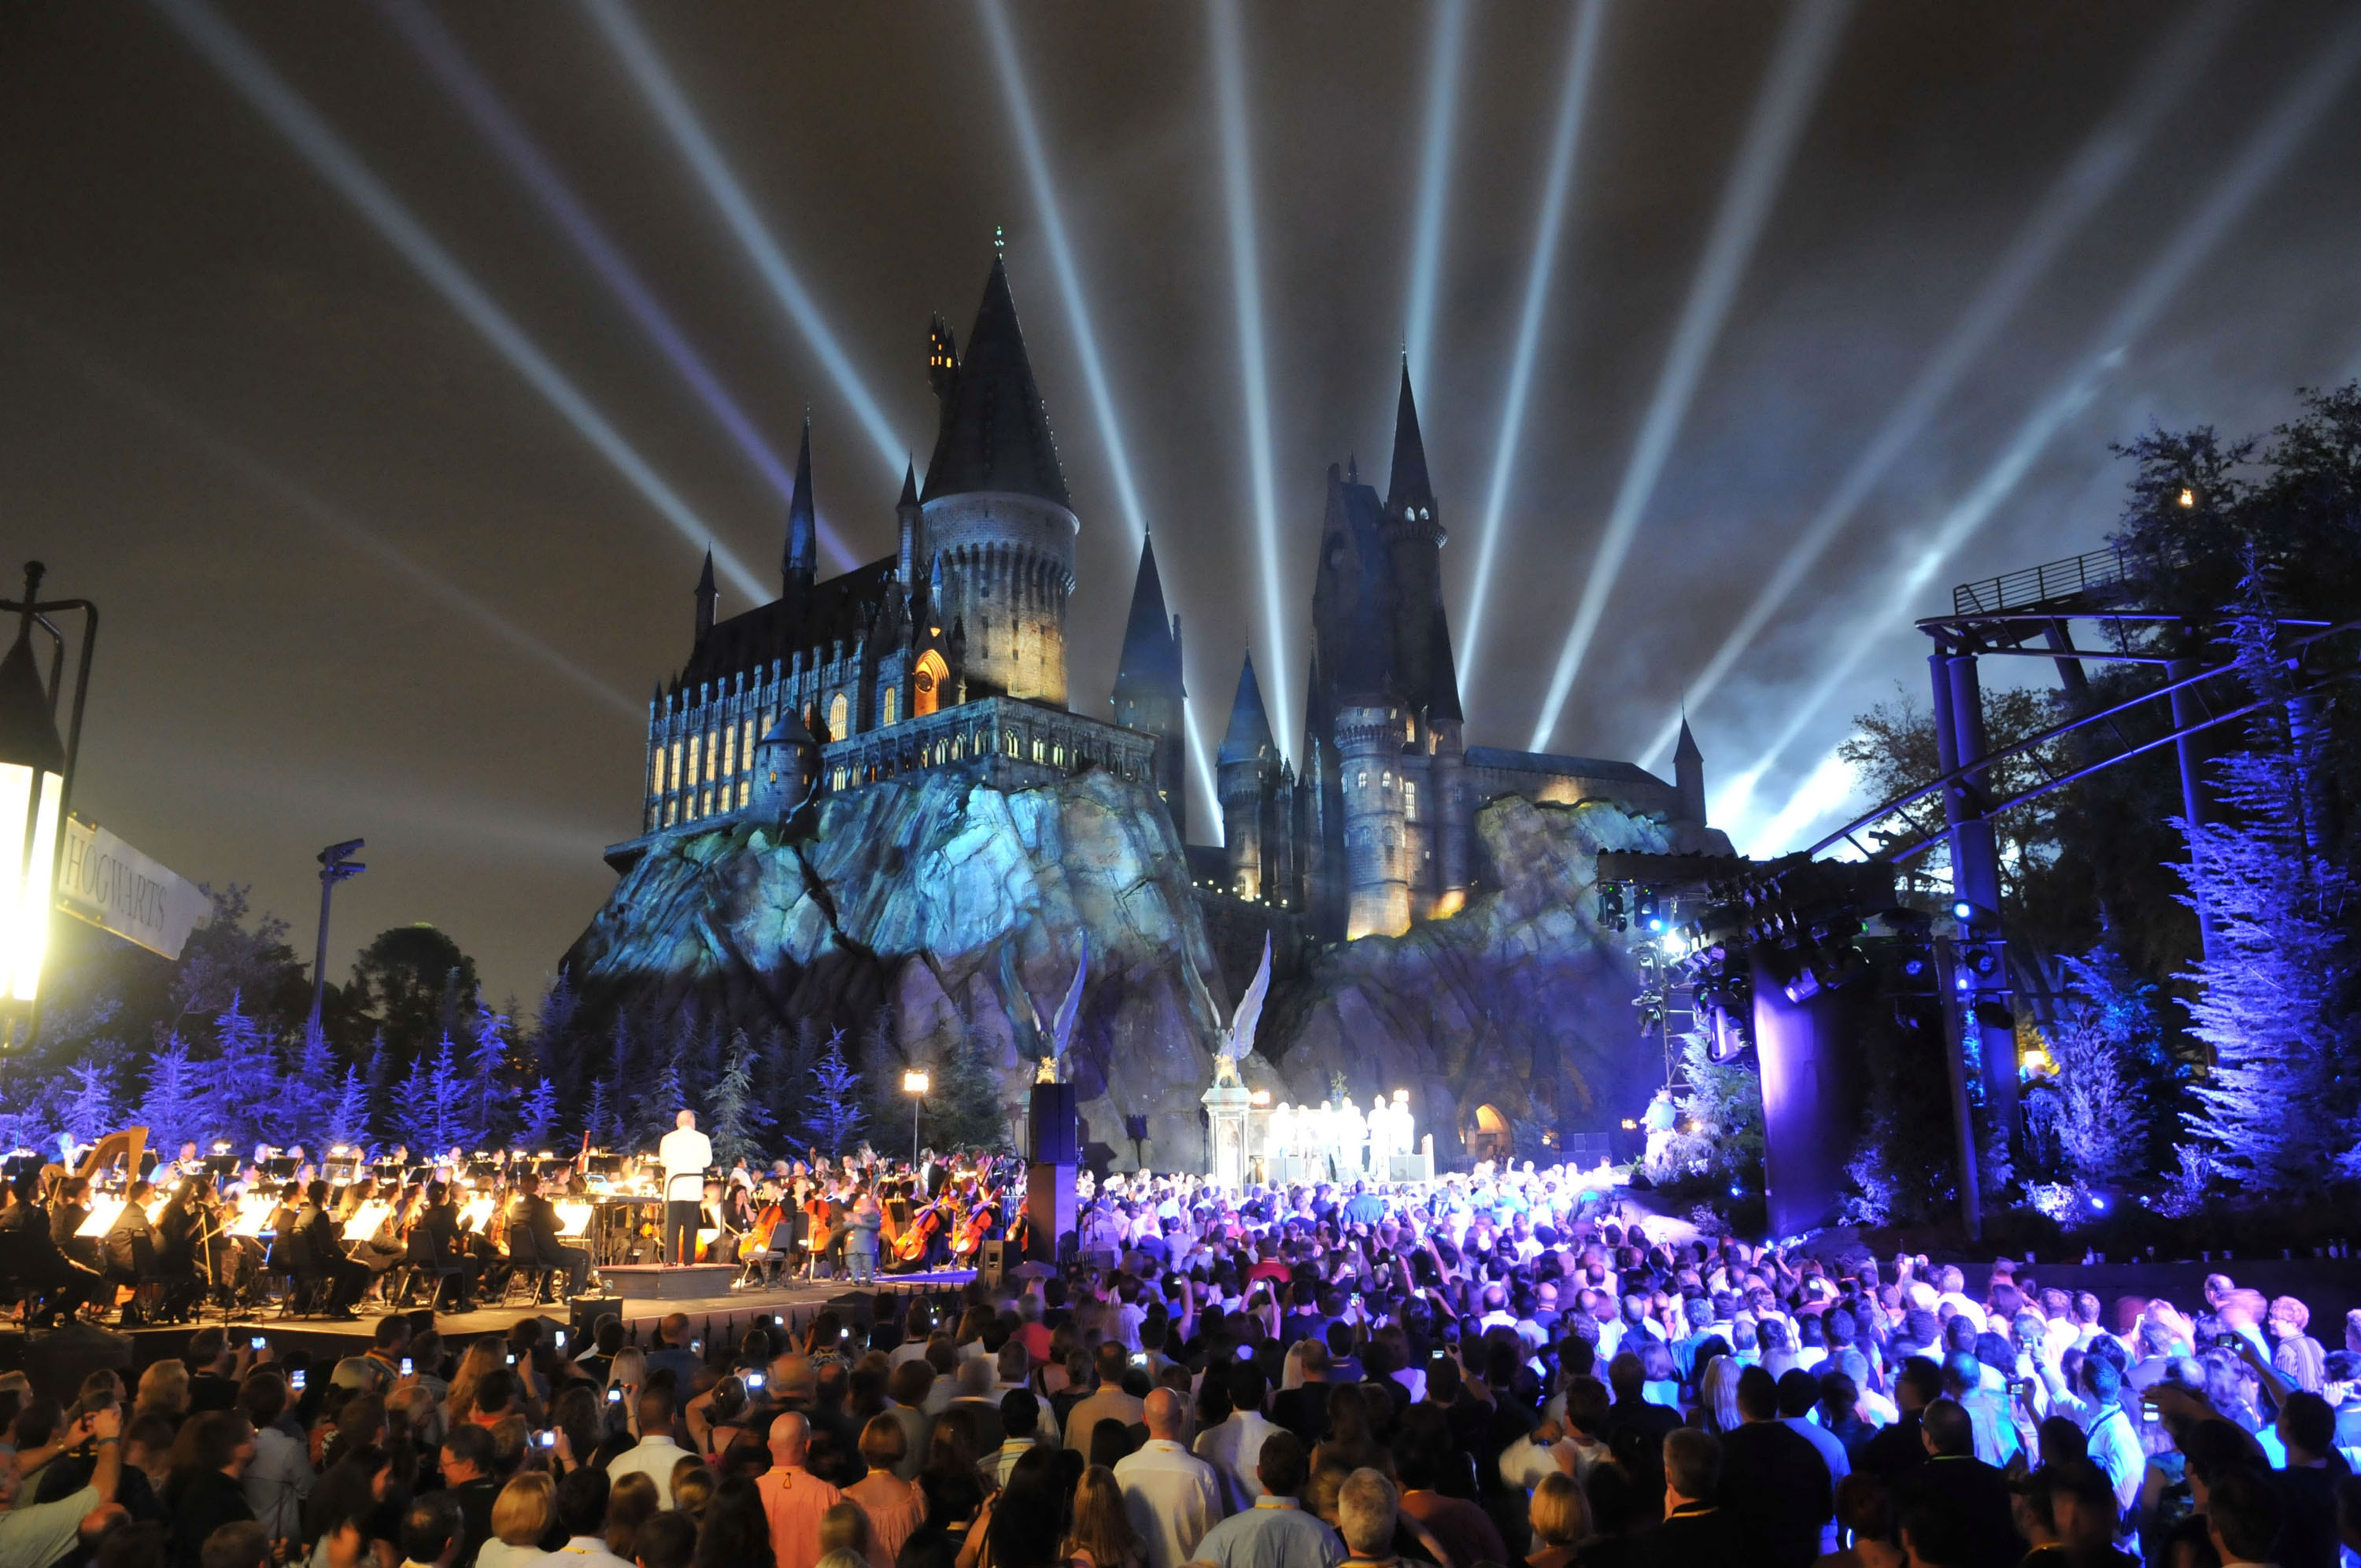 The Wizarding World of Harry Potter is seen at the Universal Orlando Resort